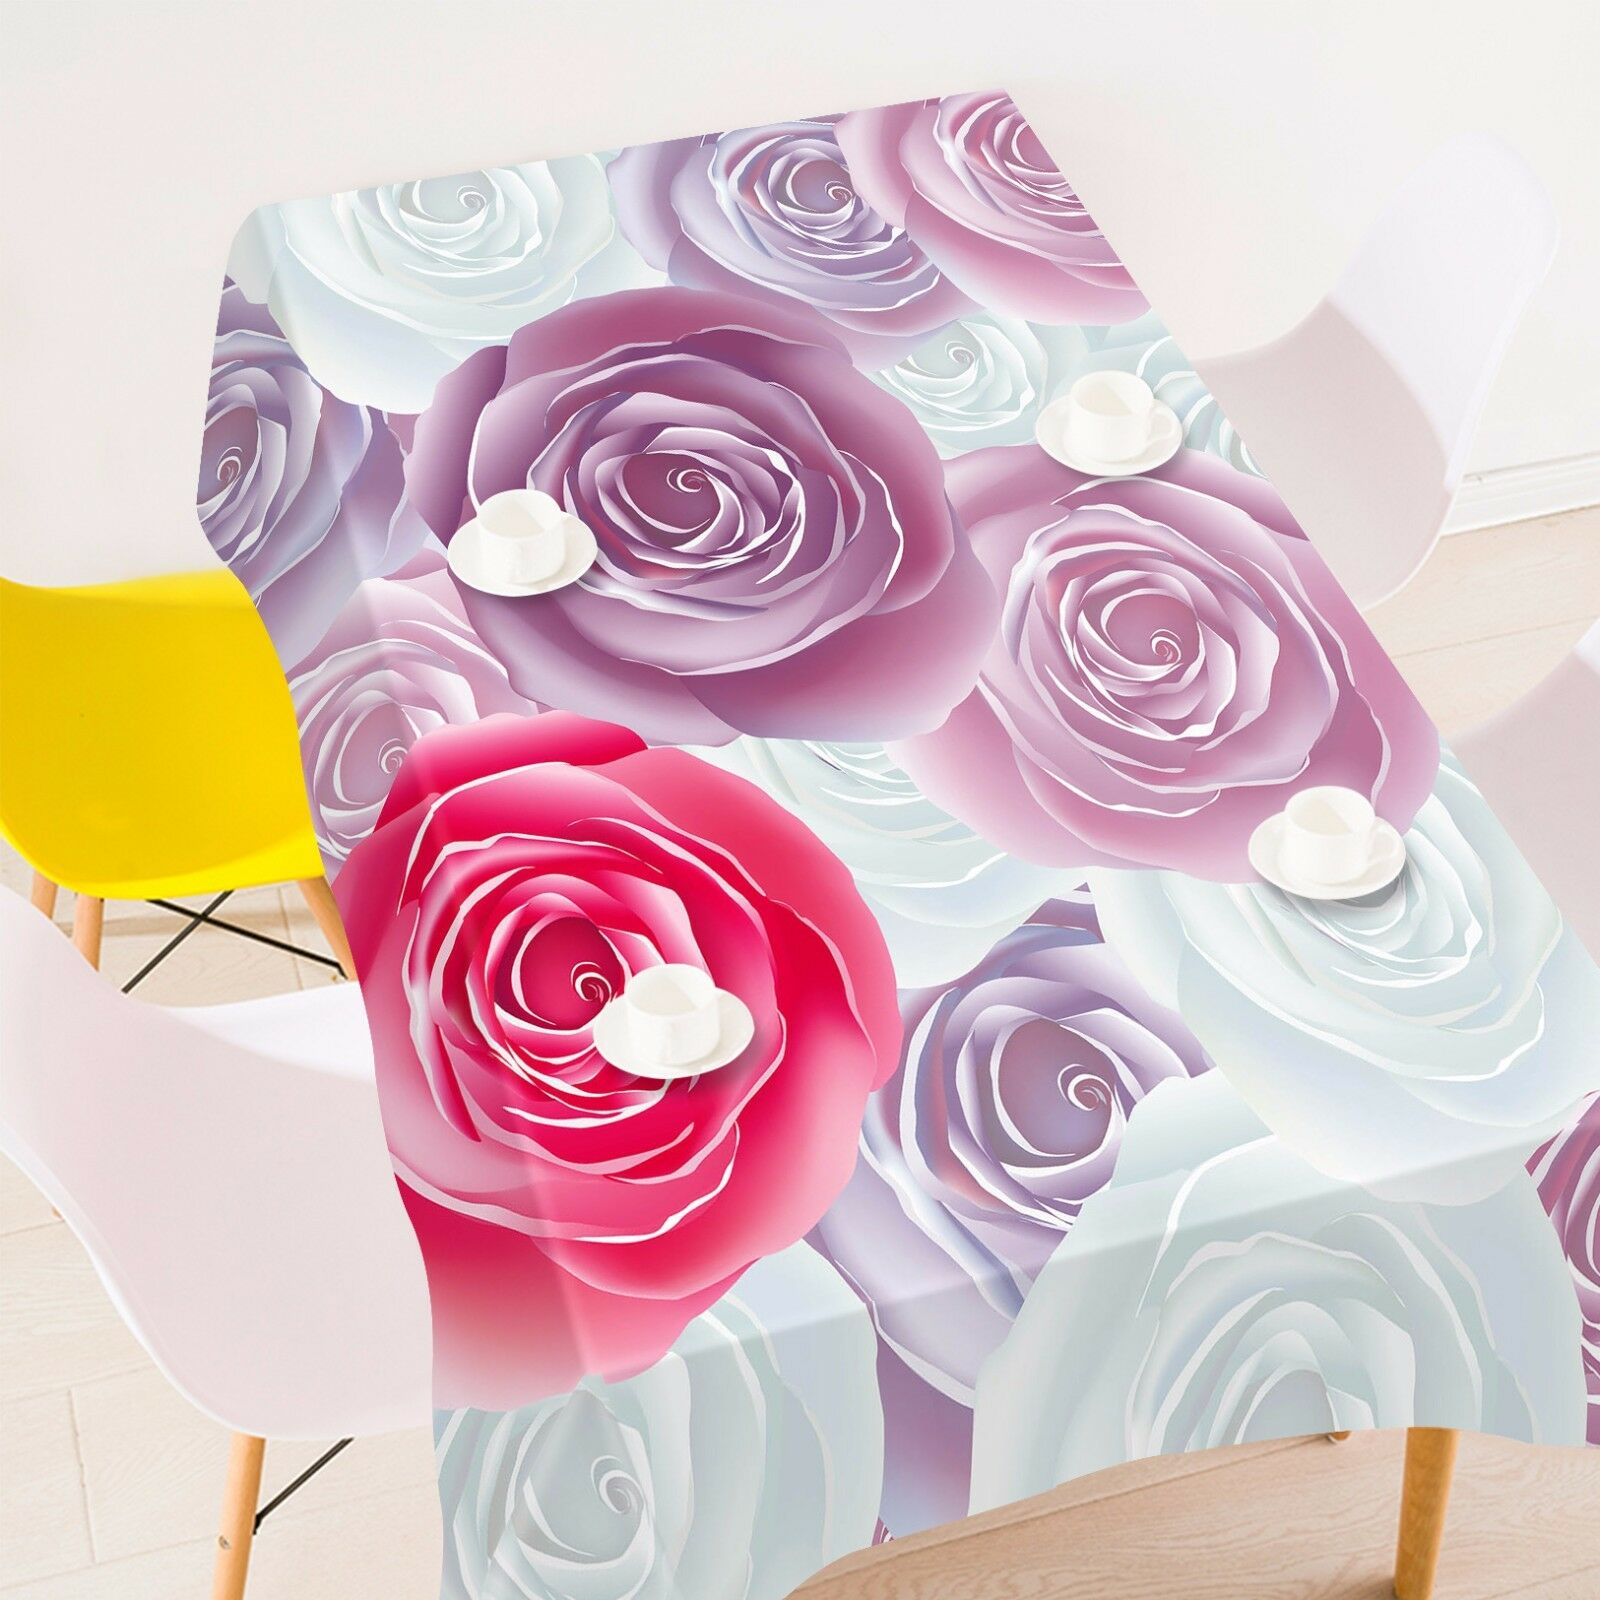 3D Flowers 751 Tablecloth Table Cover Cloth Birthday Party Event AJ WALLPAPER AU